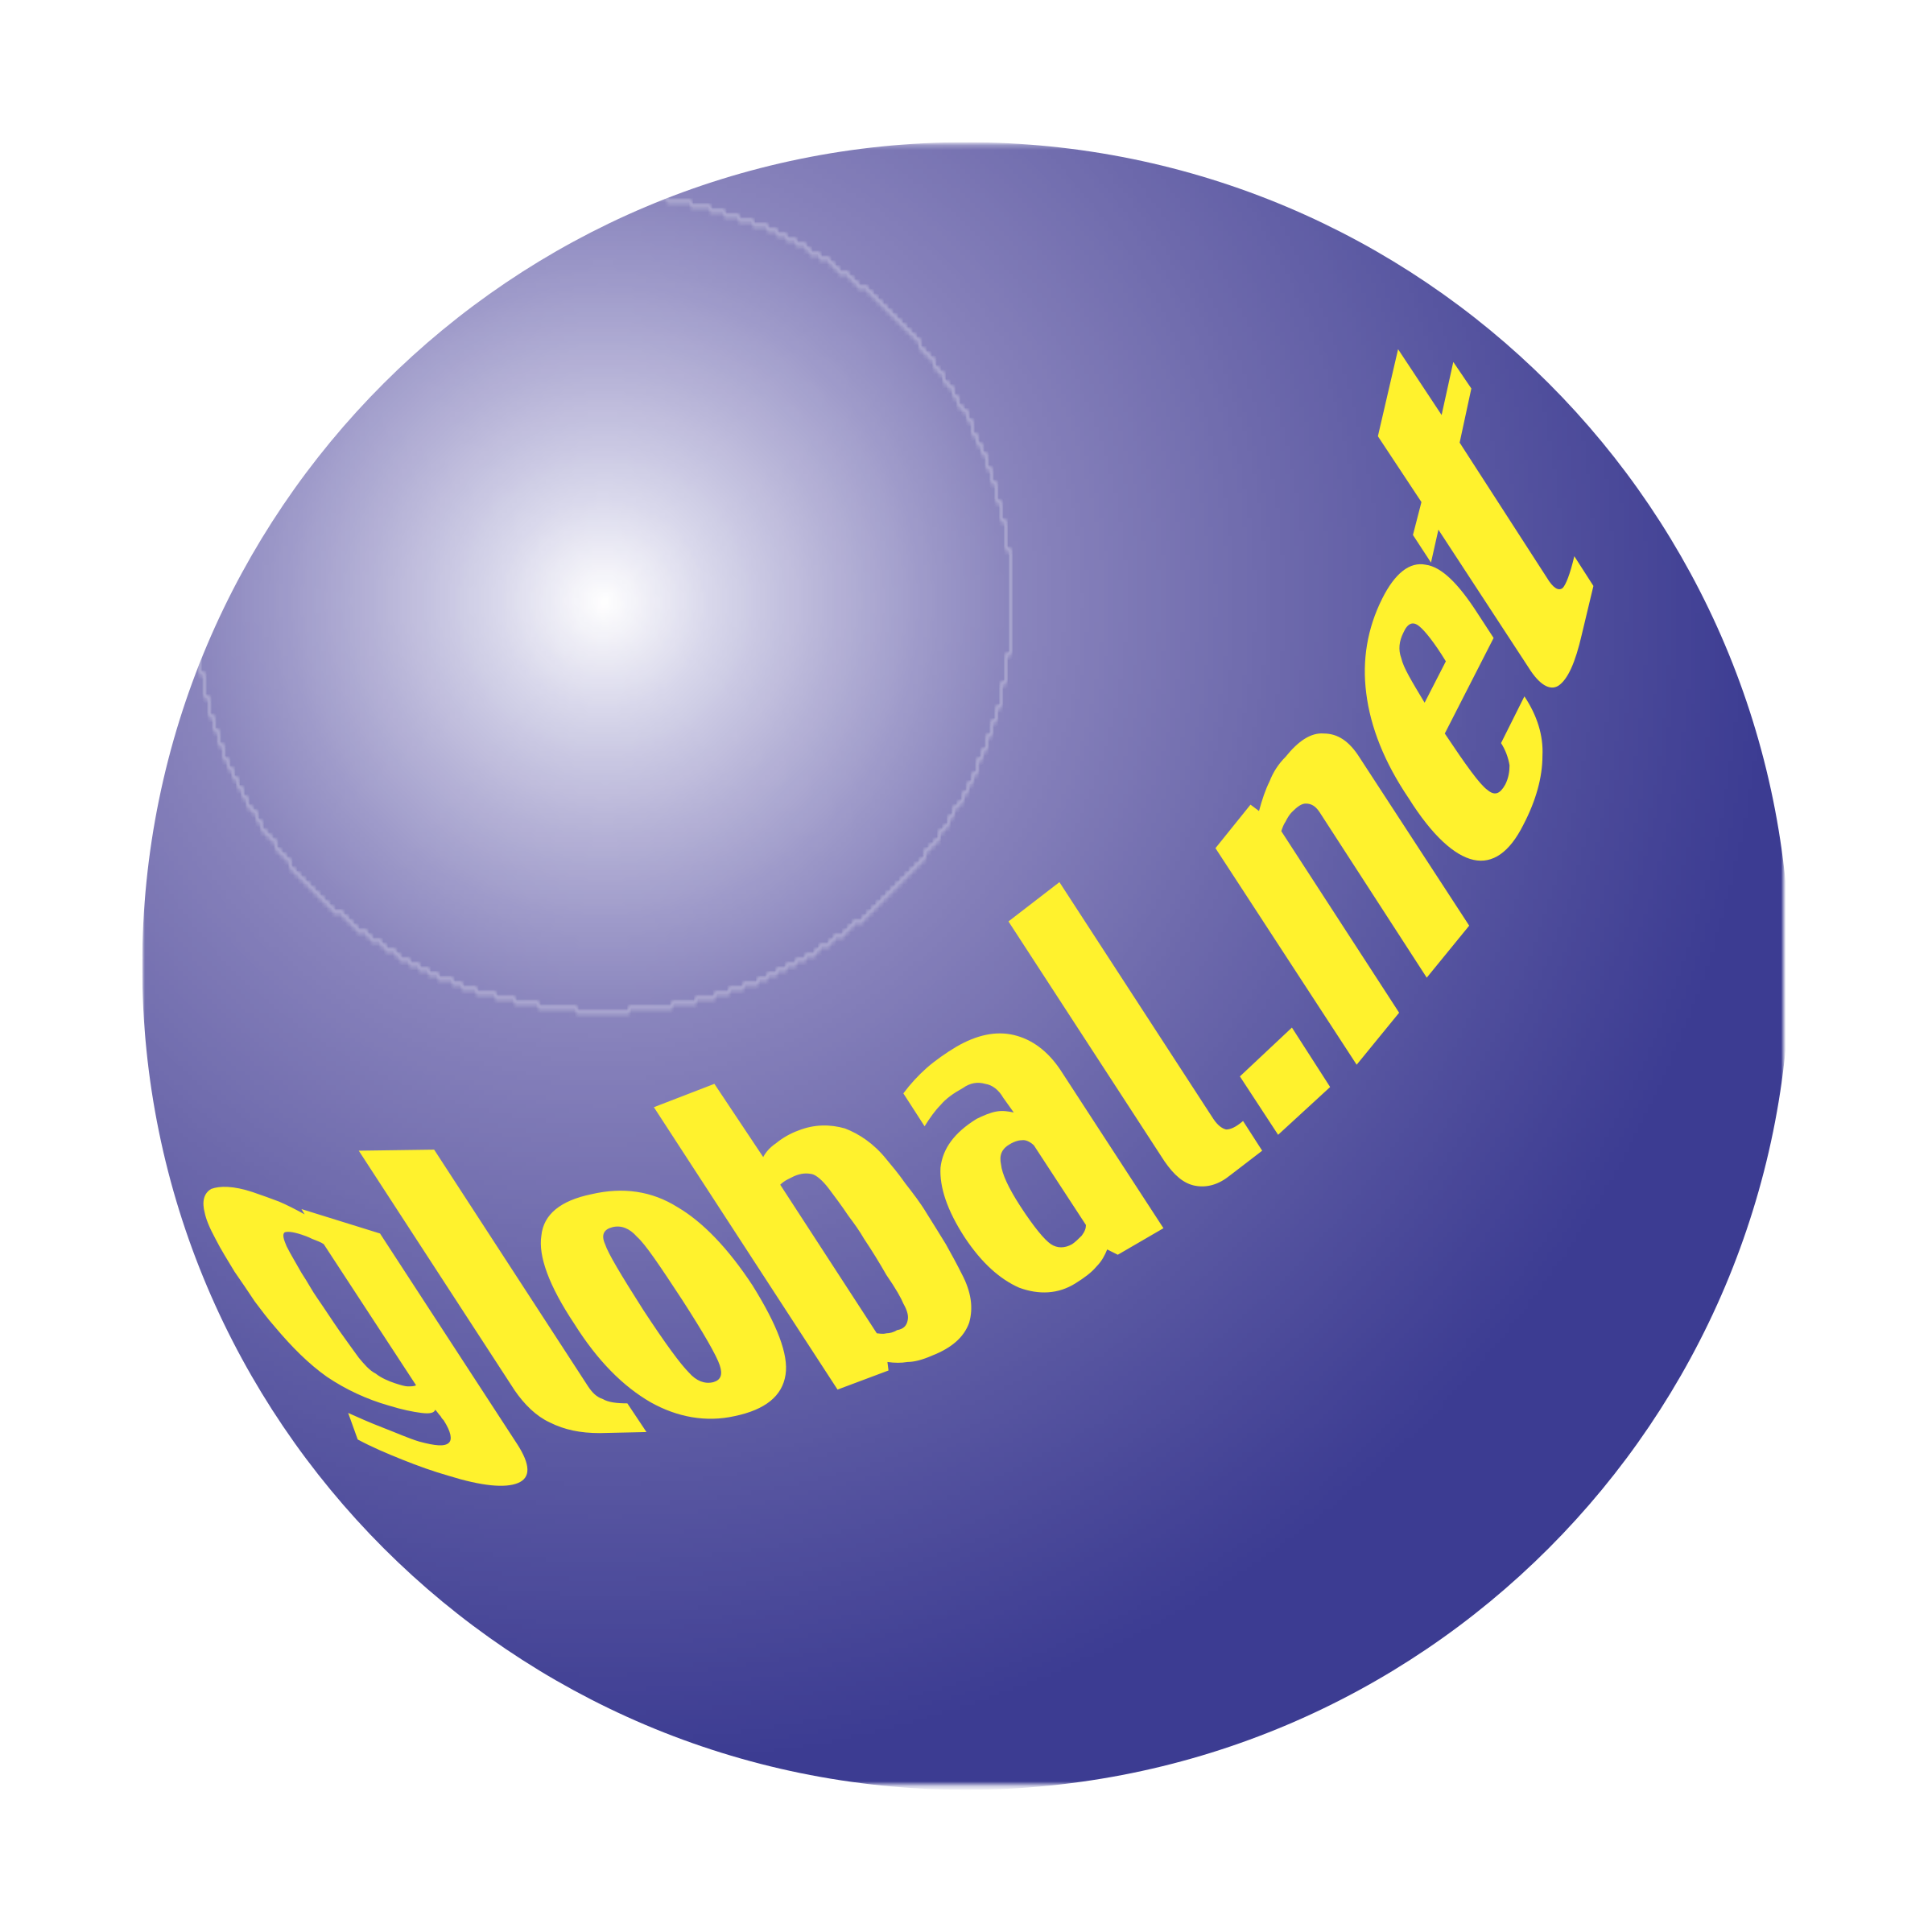 clipart black and white global net Logo PNG Transparent